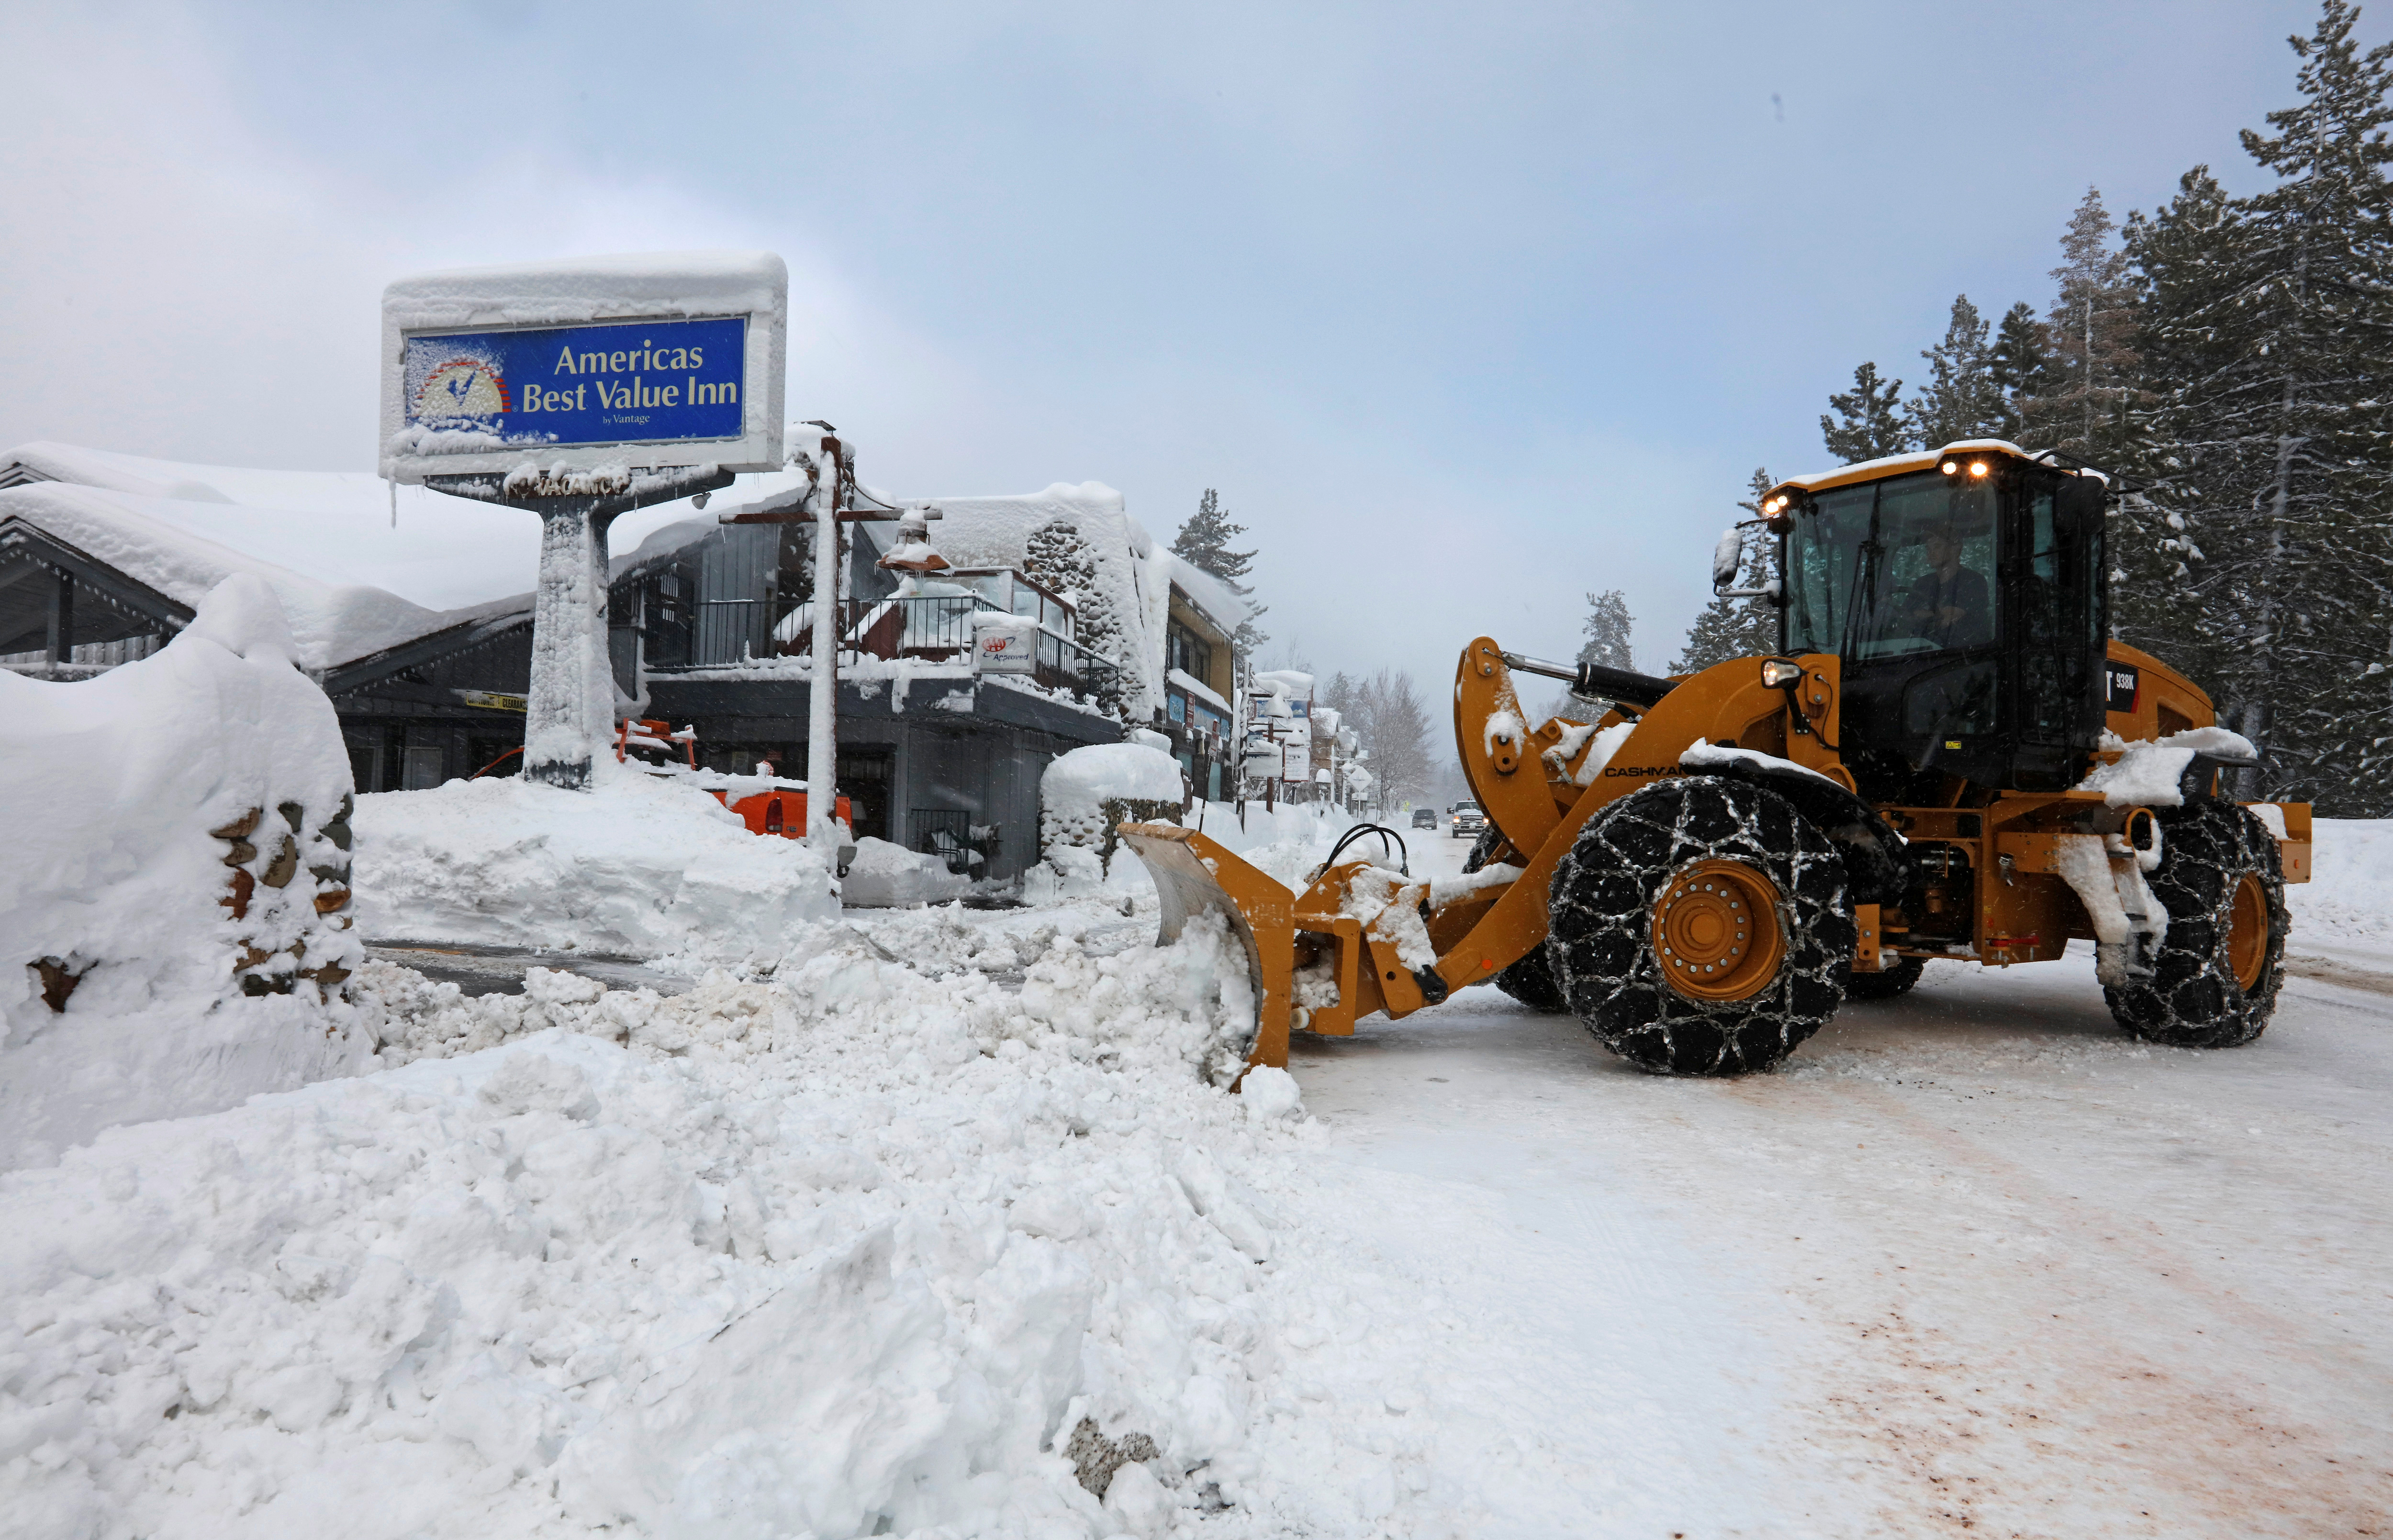 A plow clears snow after a heavy winter storm in Tahoe City, California.